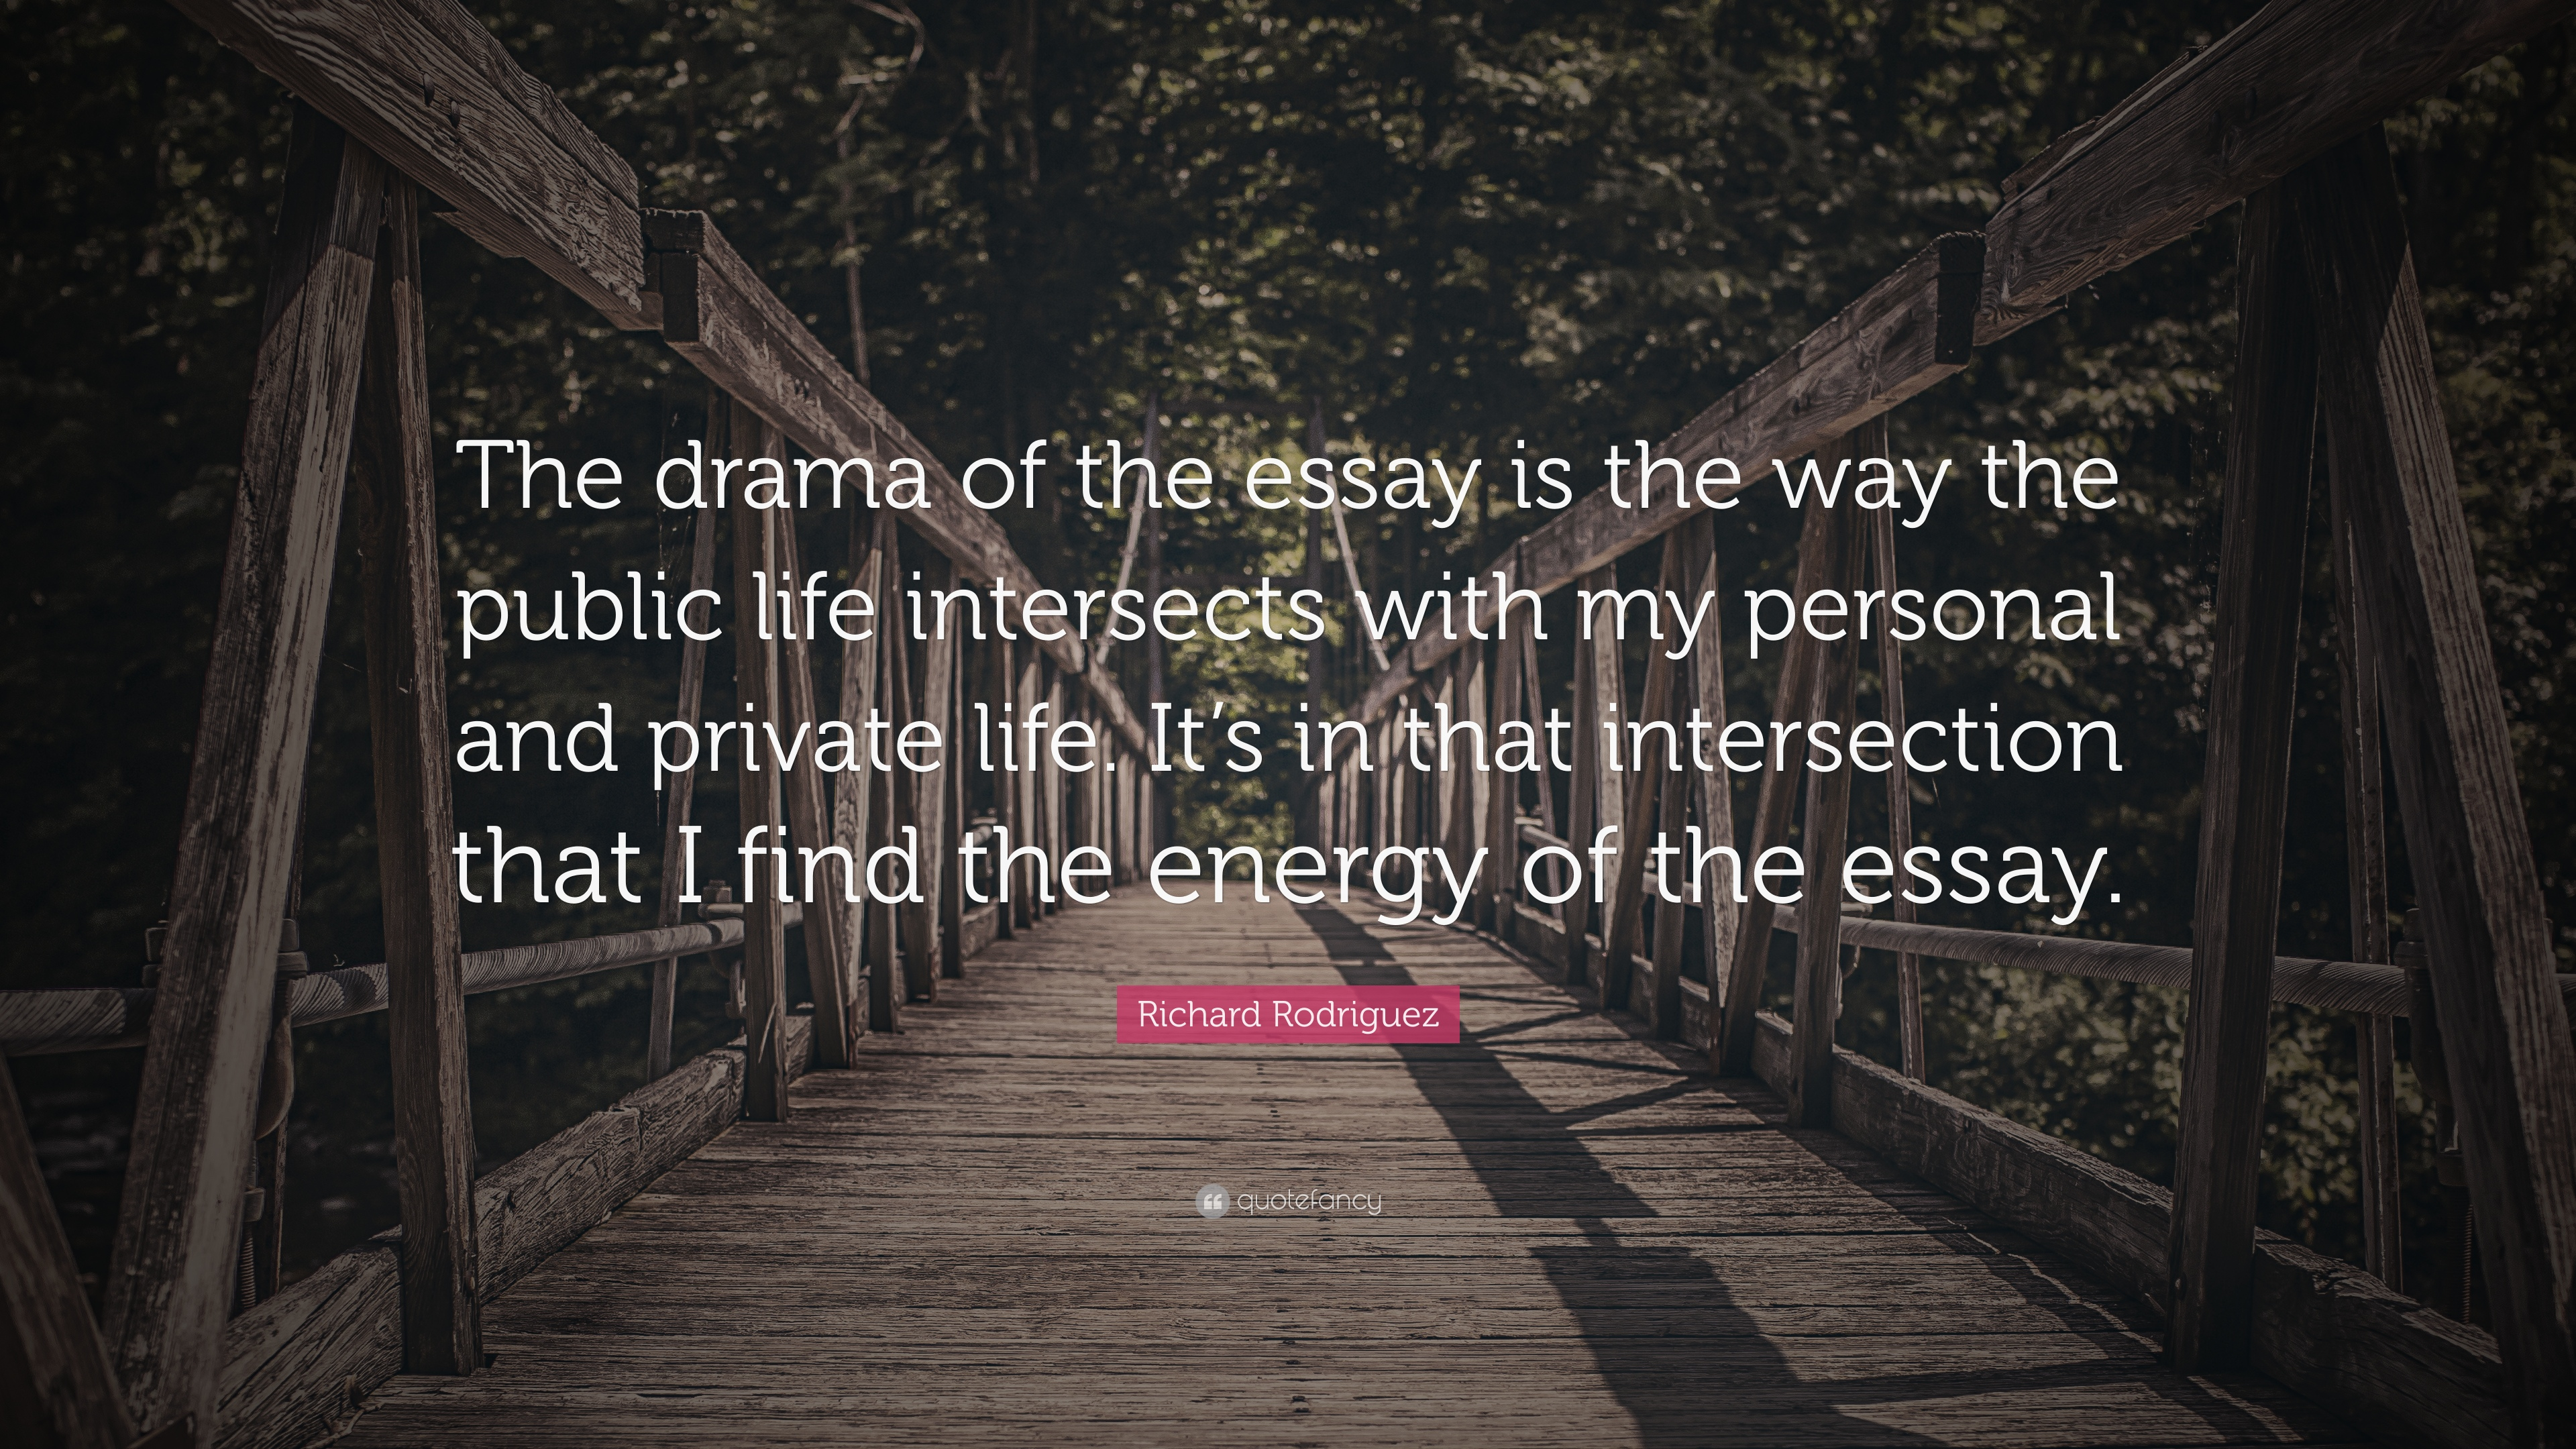 richard rodriguez quotes quotefancy richard rodriguez quote the drama of the essay is the way the public life